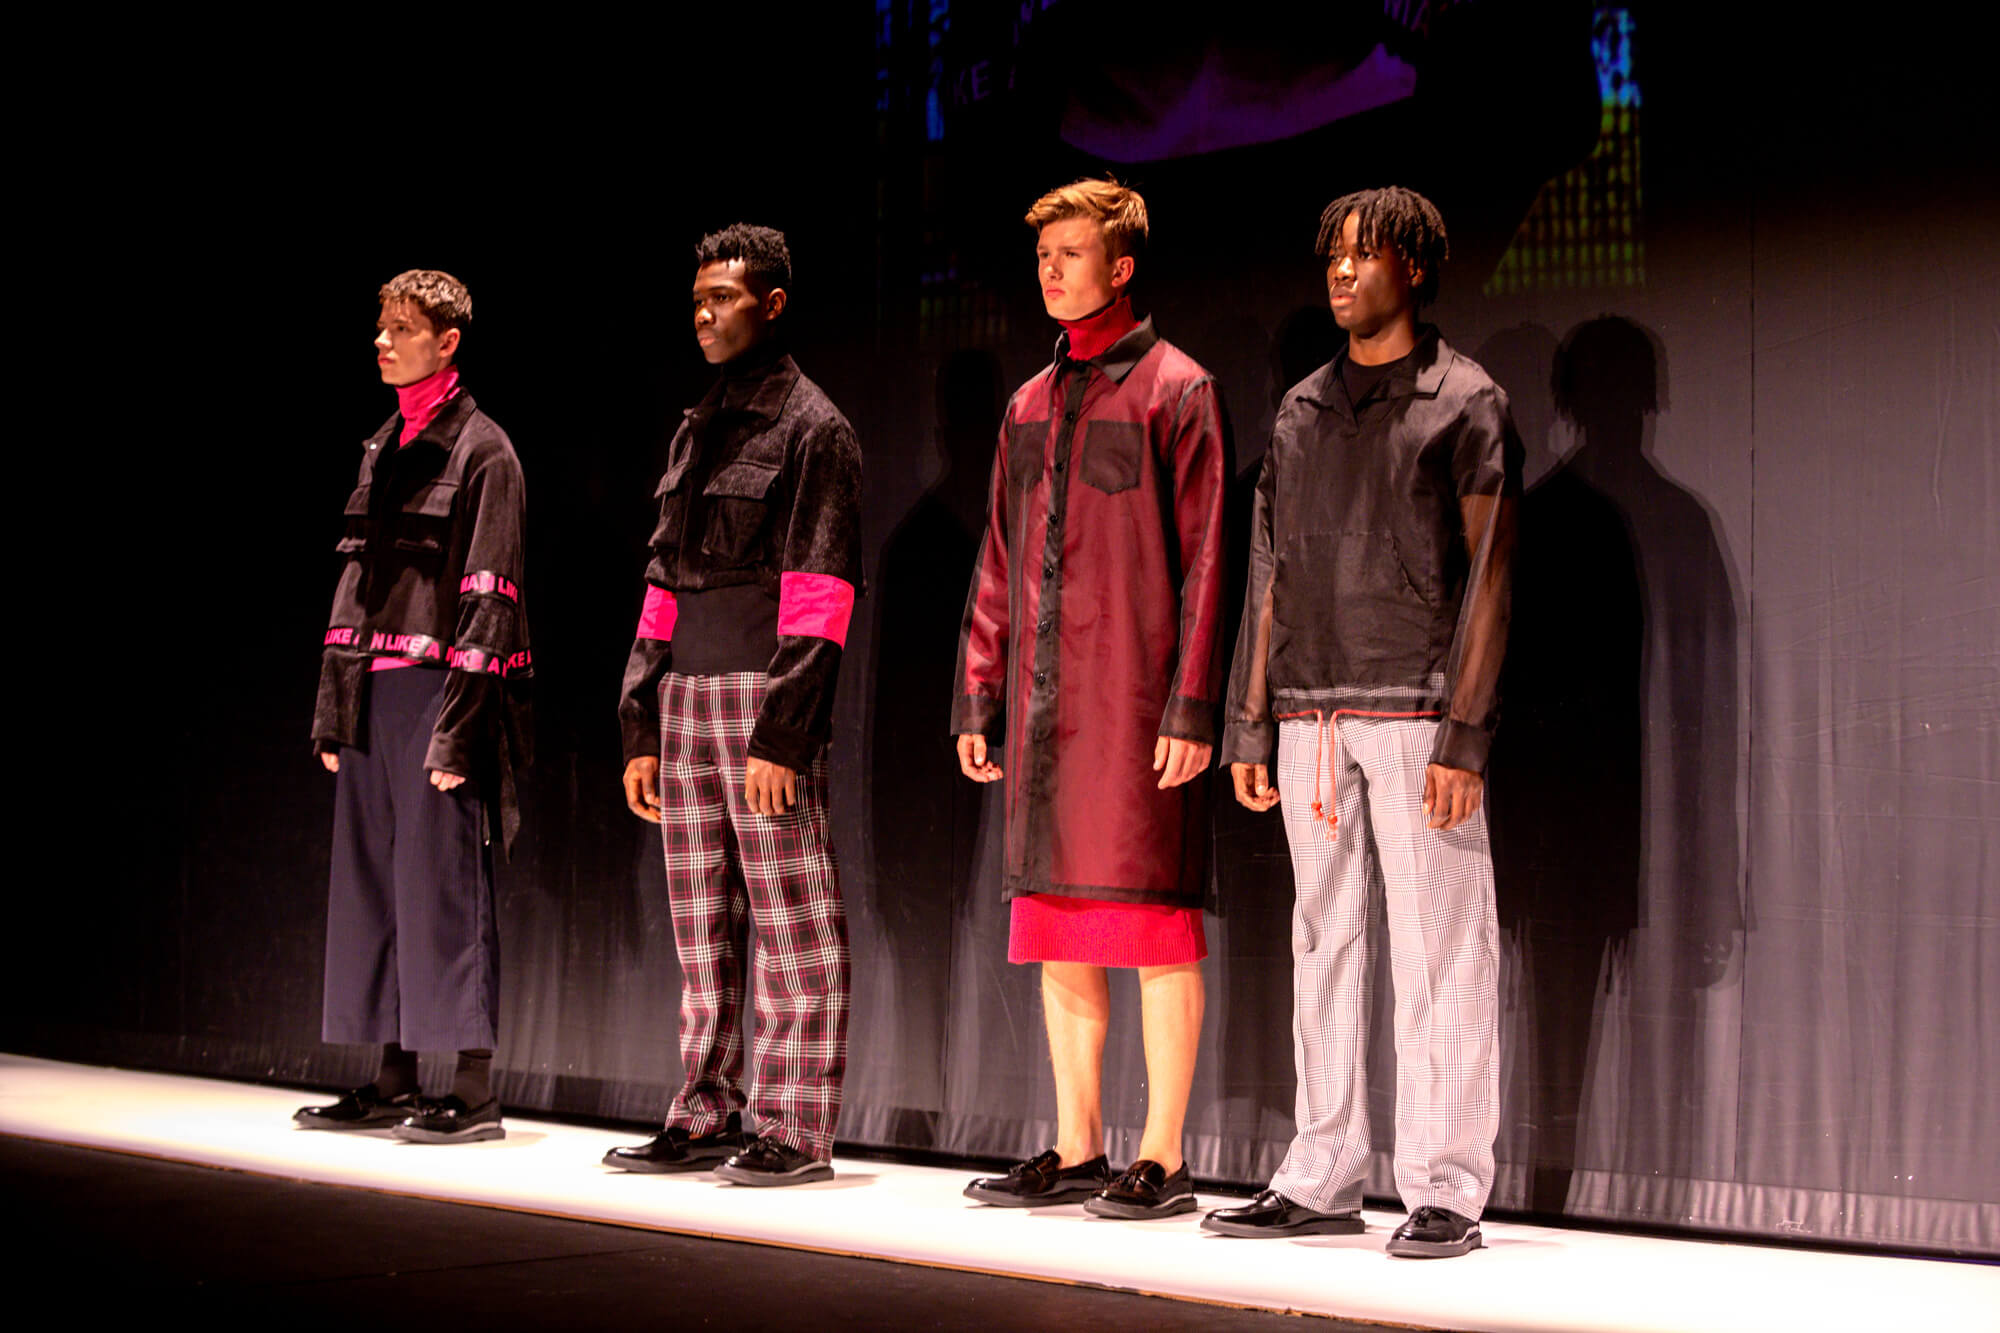 Male models showcase menswear in a catwalk lineup